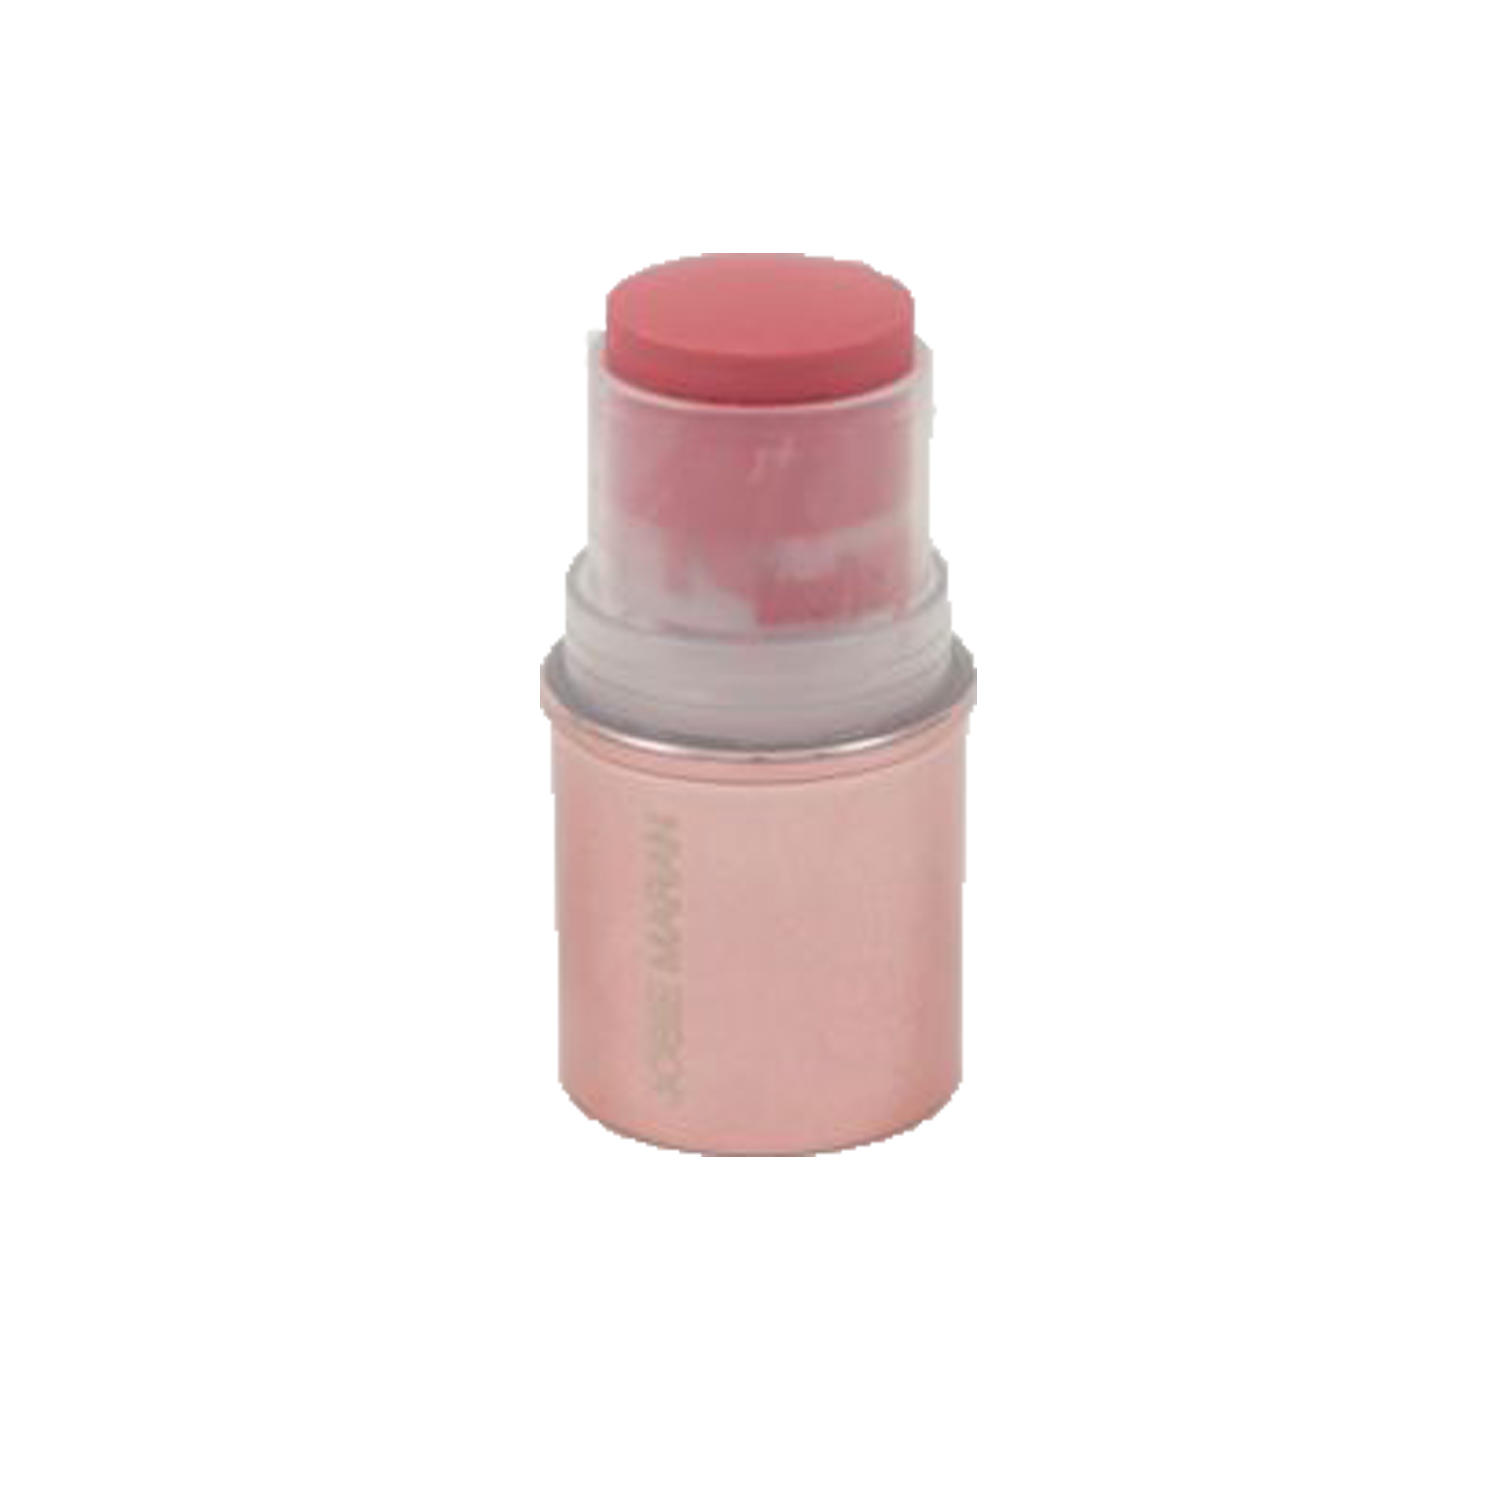 Josie Maran Argan Color Stick Love Mini